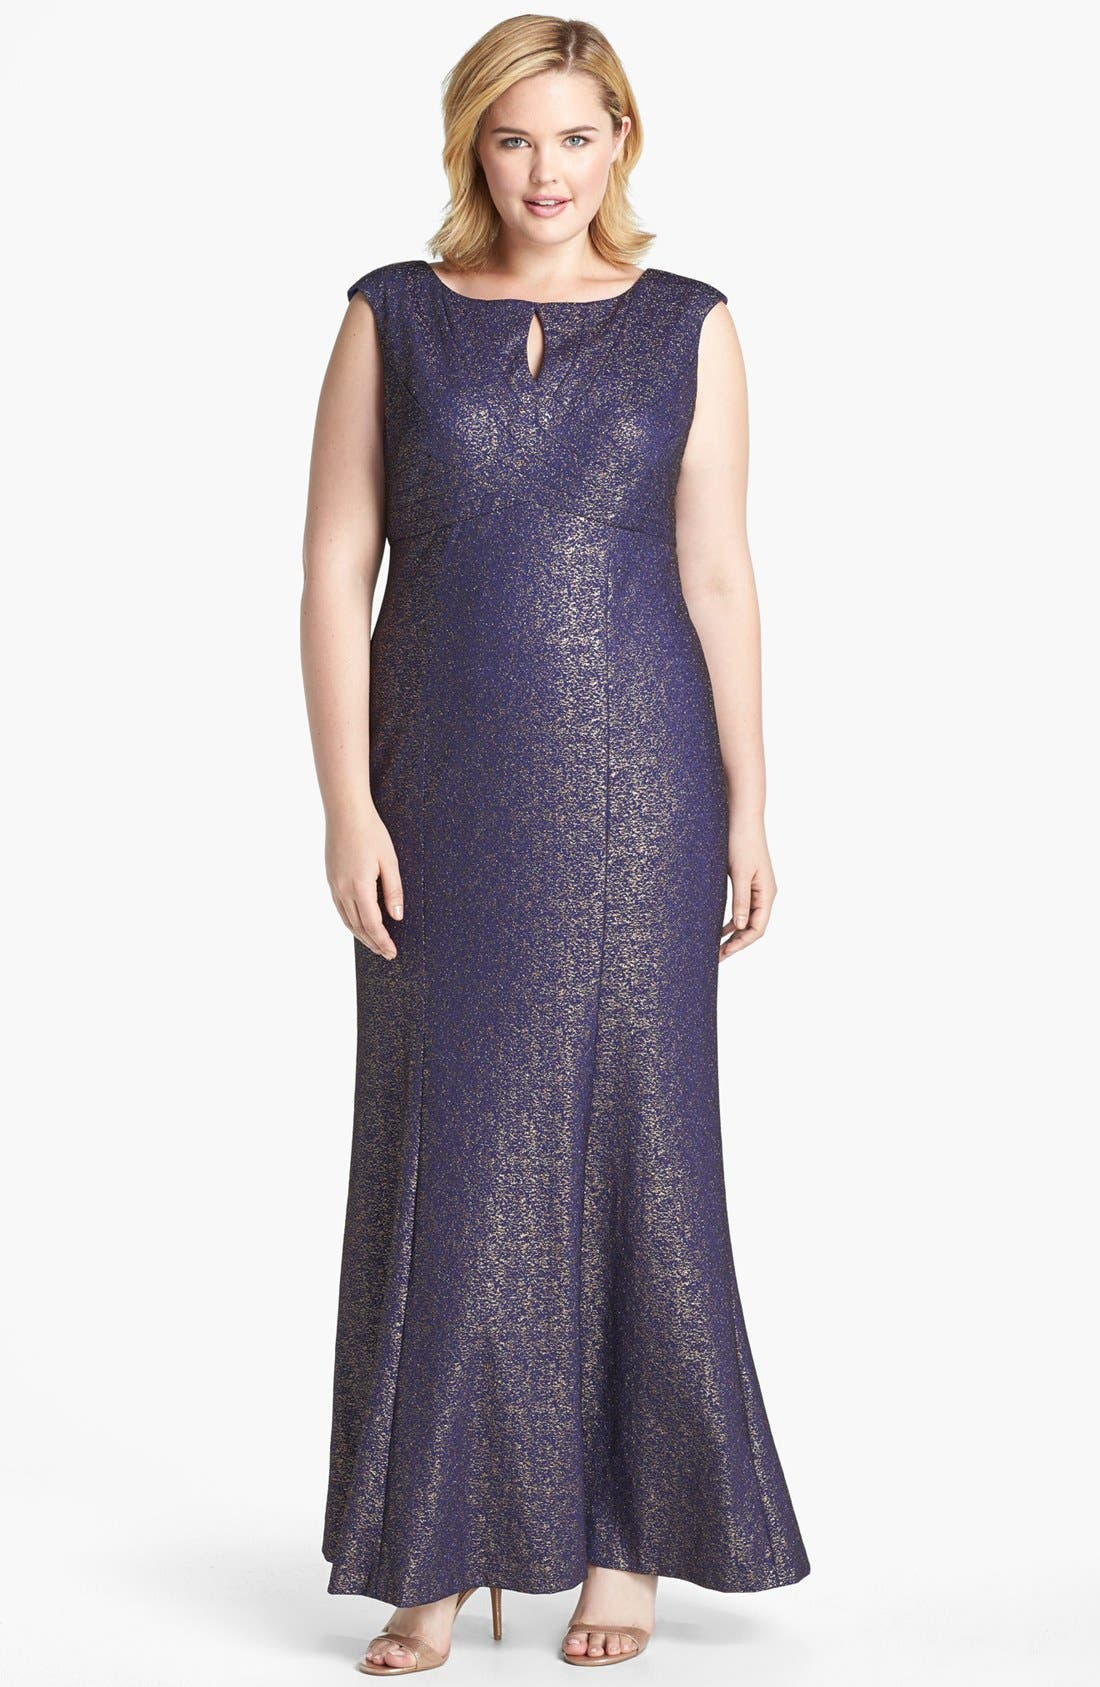 Alternate Image 1 Selected - Kay Unger Metallic Lace Gown (Plus Size)